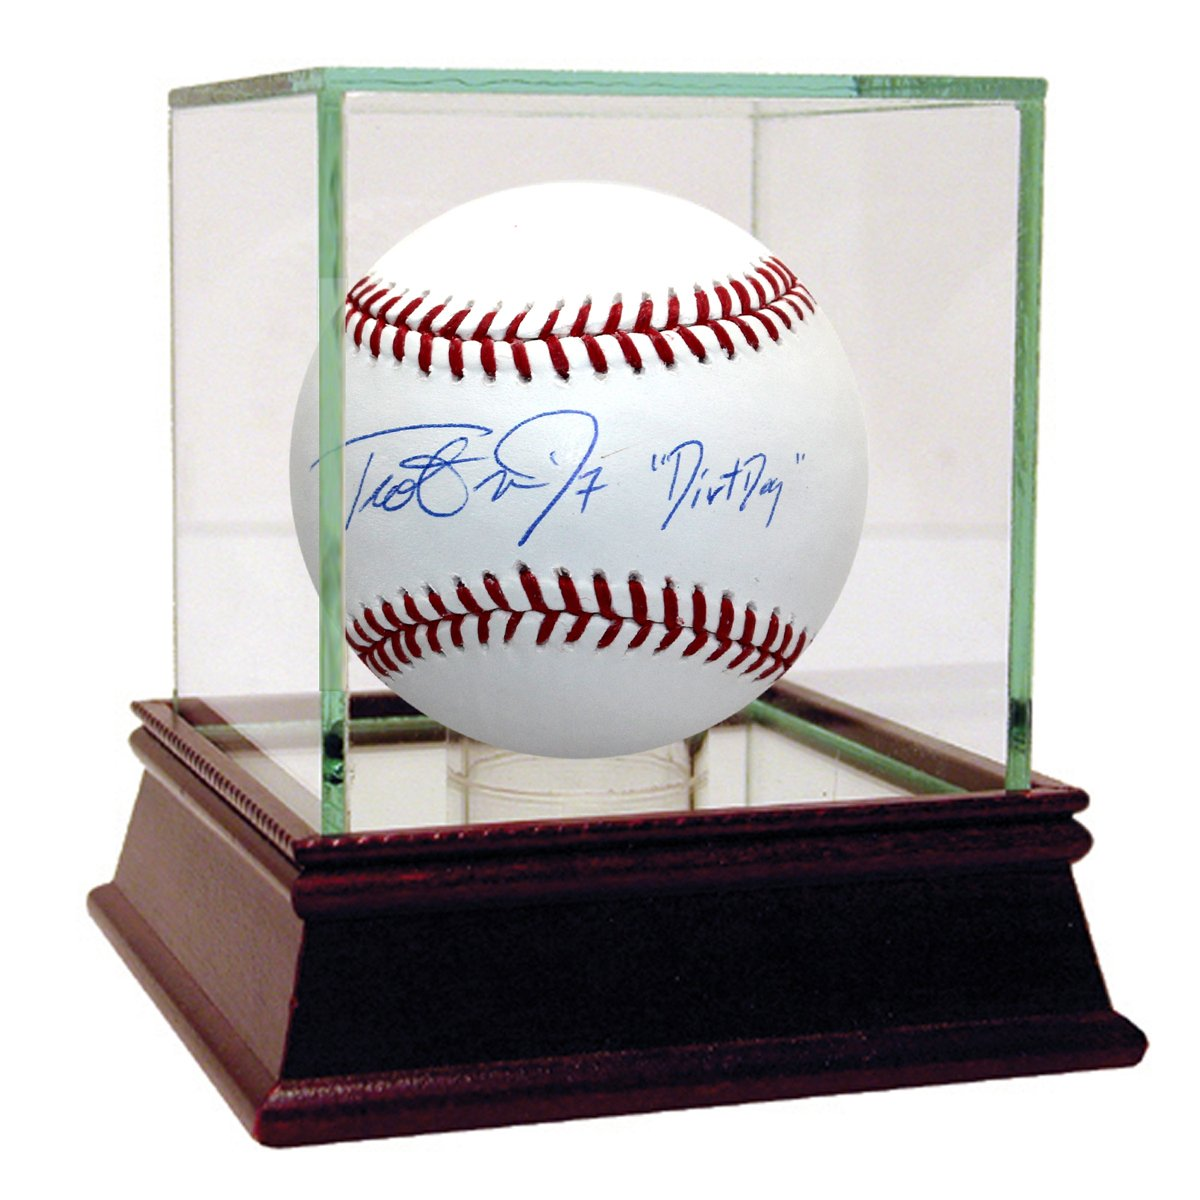 Steiner Sports MLB Boston Red Sox Trot Nixon Signed Baseball with Dirt Dog Inscribed NIXOBAS000005